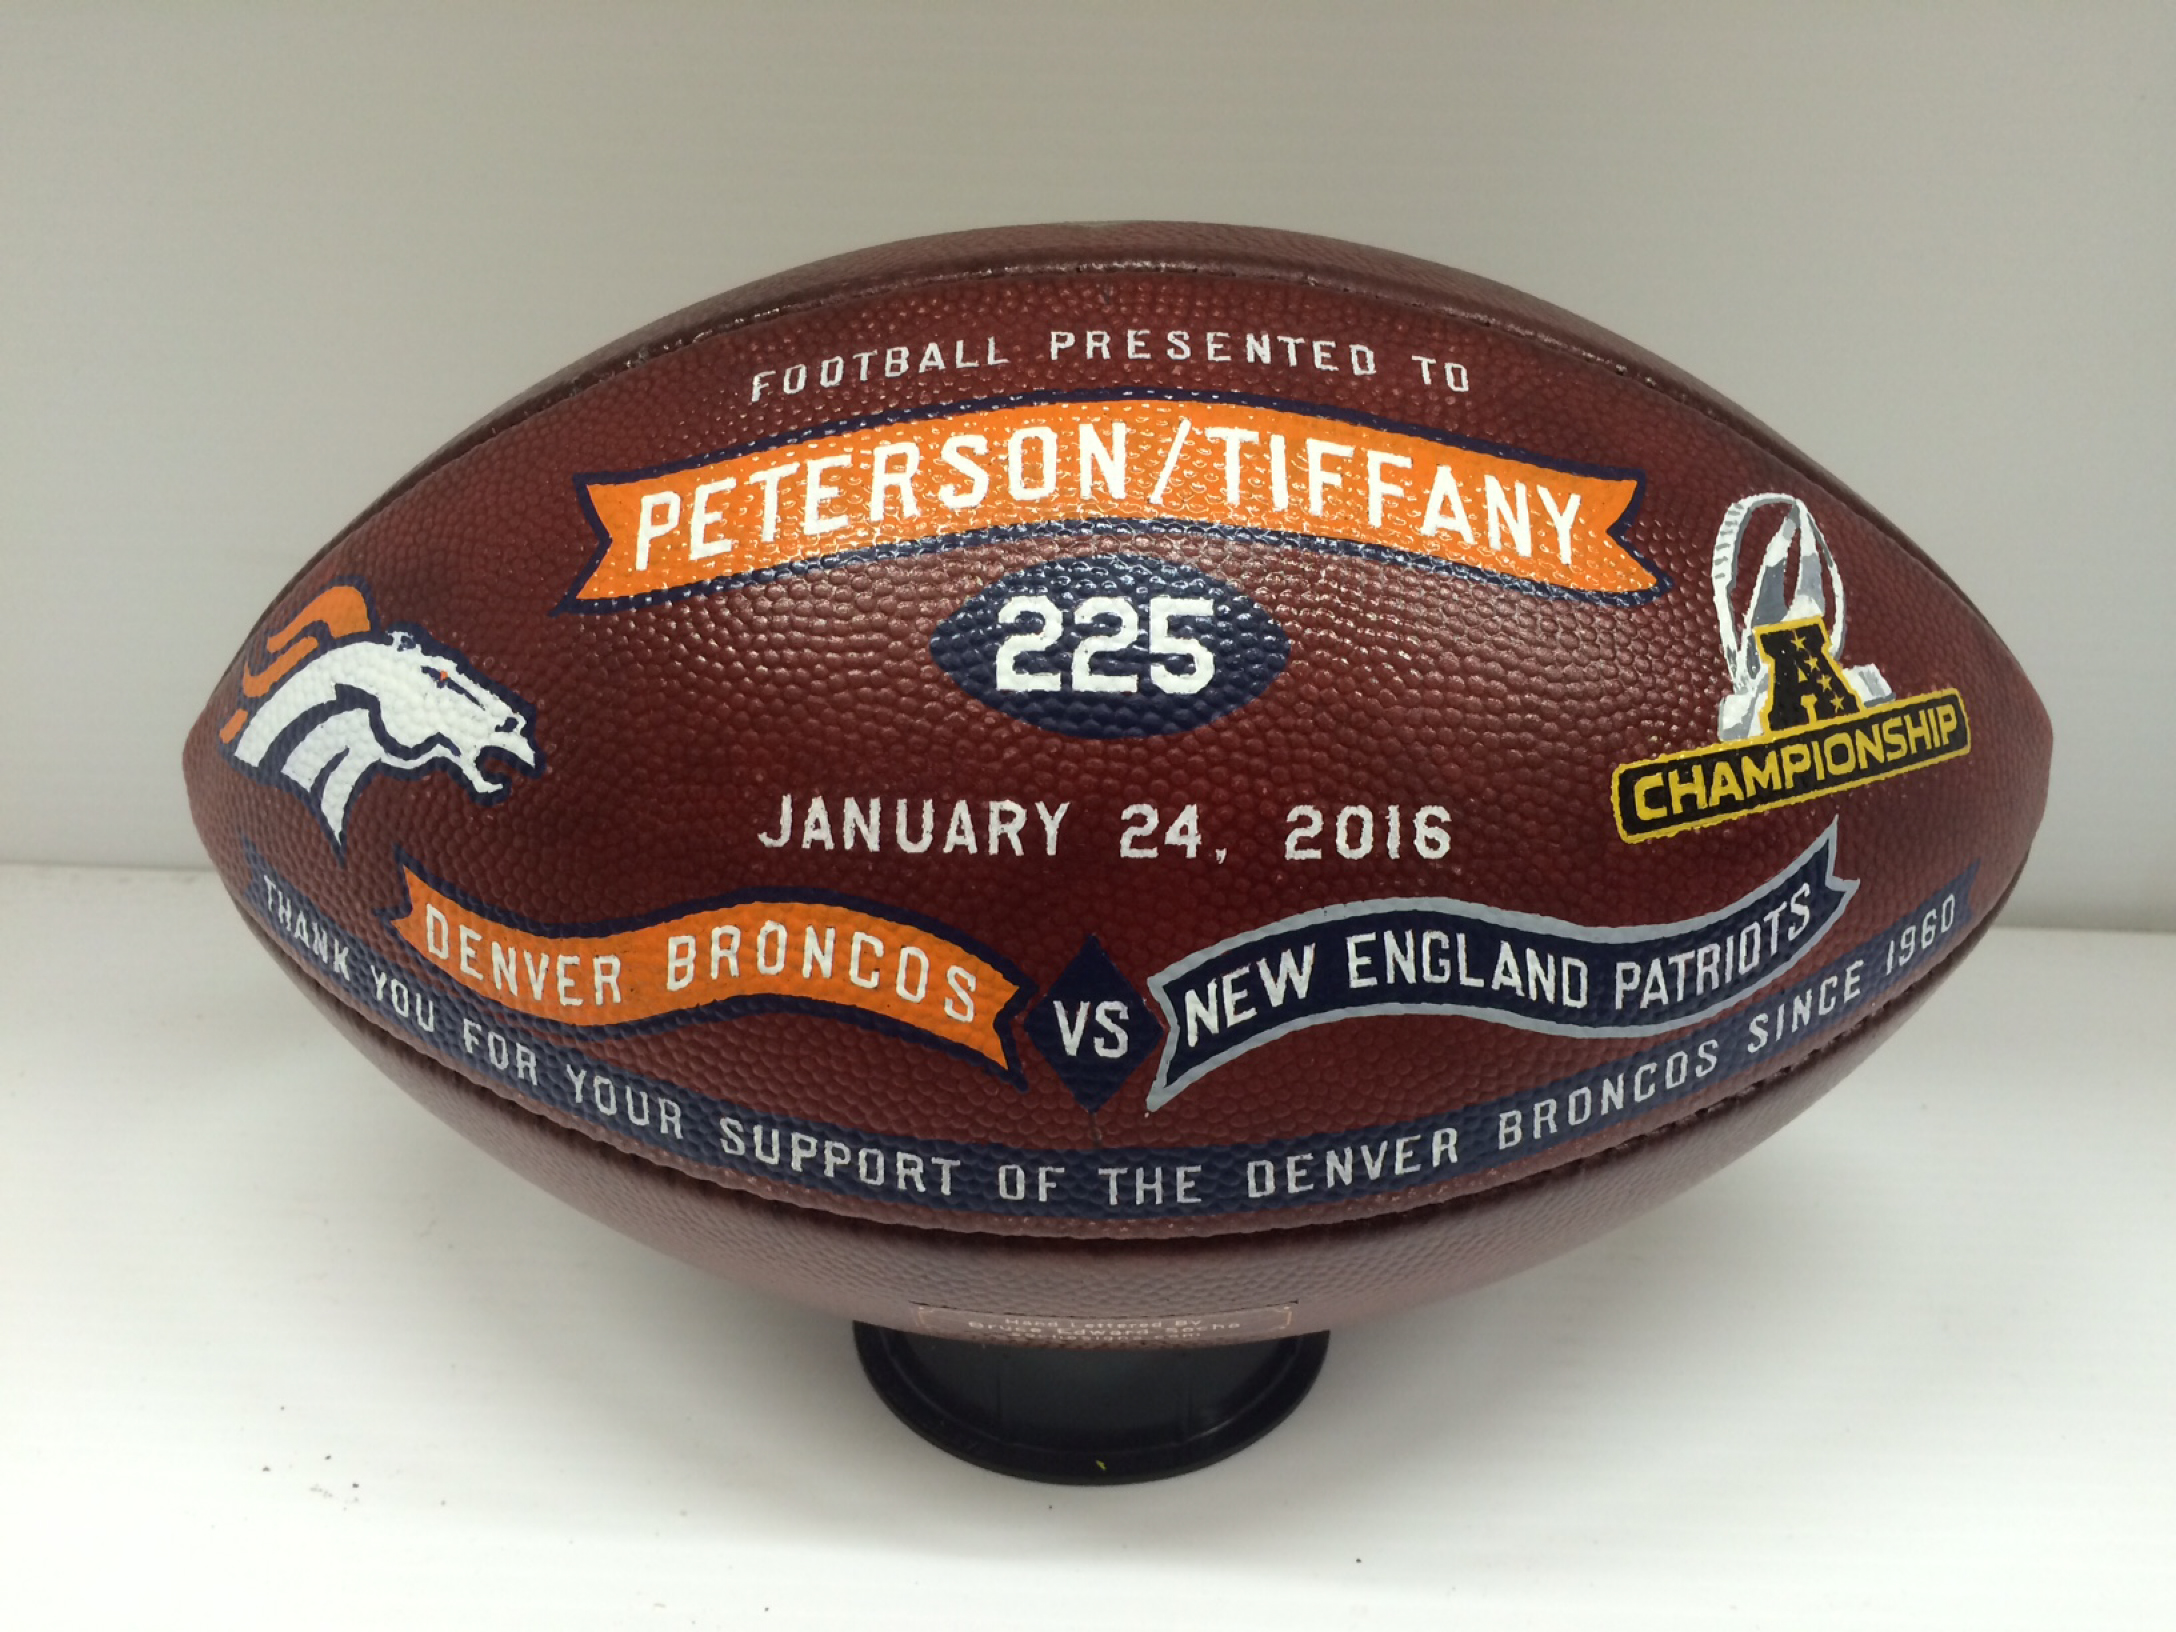 Gift football for 2016 NFL AFC game